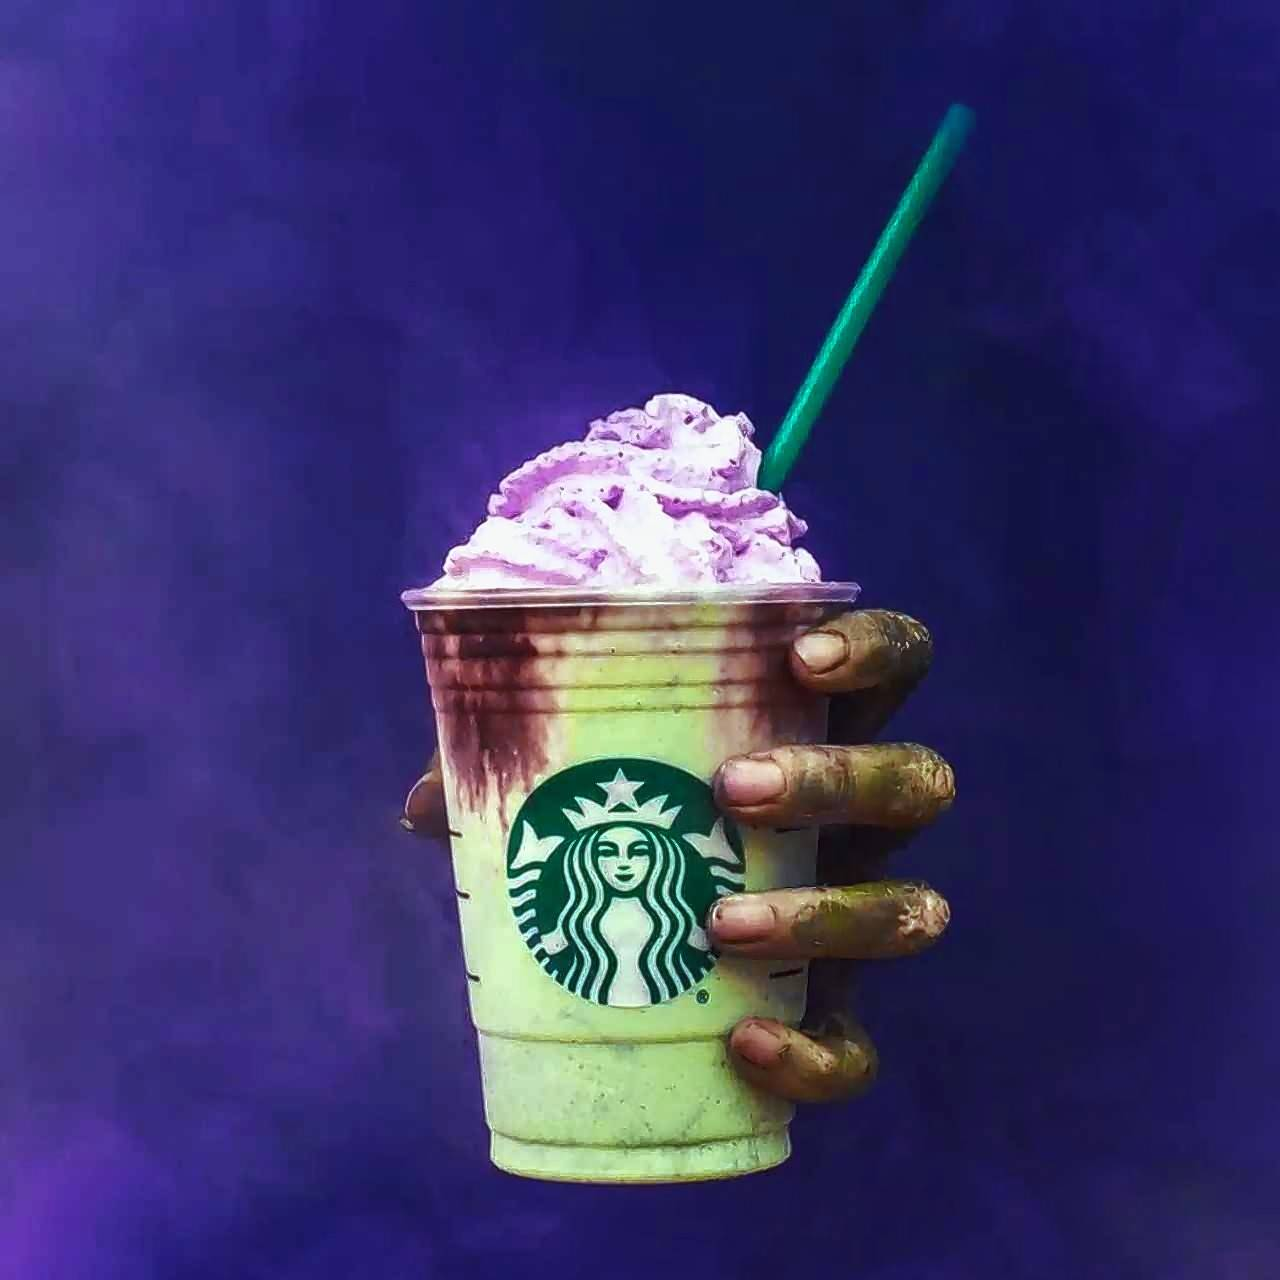 Starbucks Zombie Frappuccino takes over social media feeds